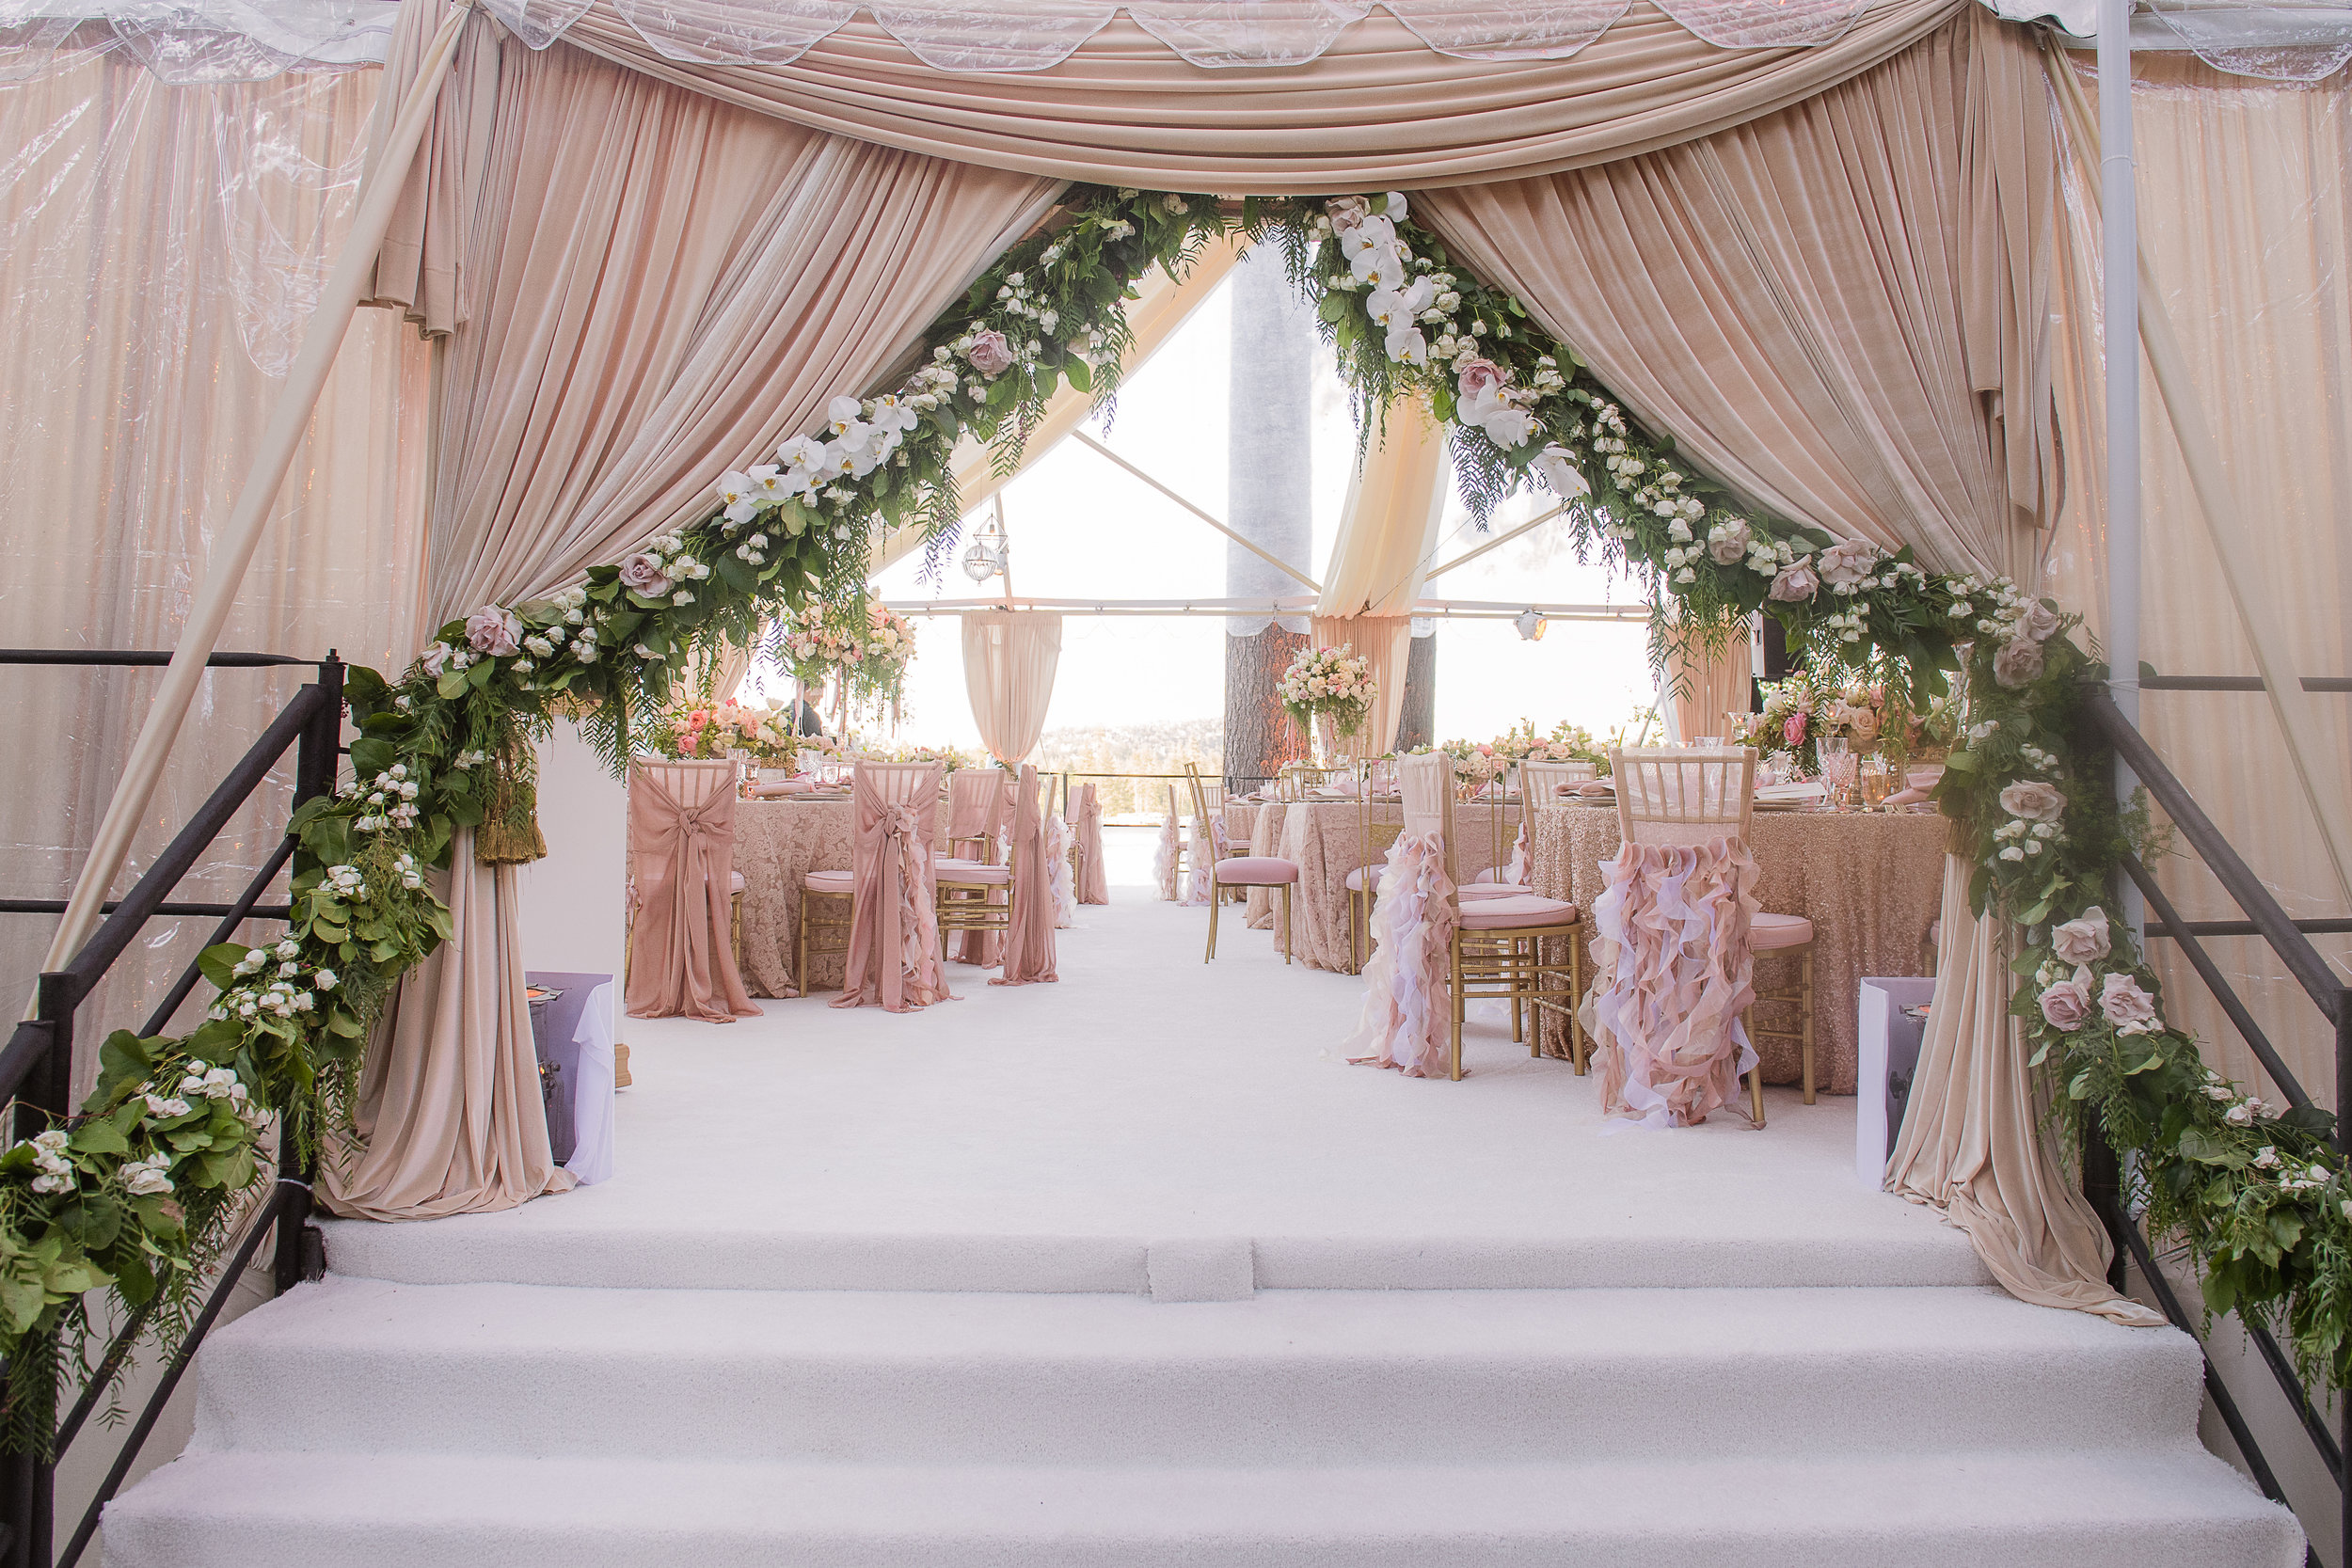 tent entrance draping.jpg